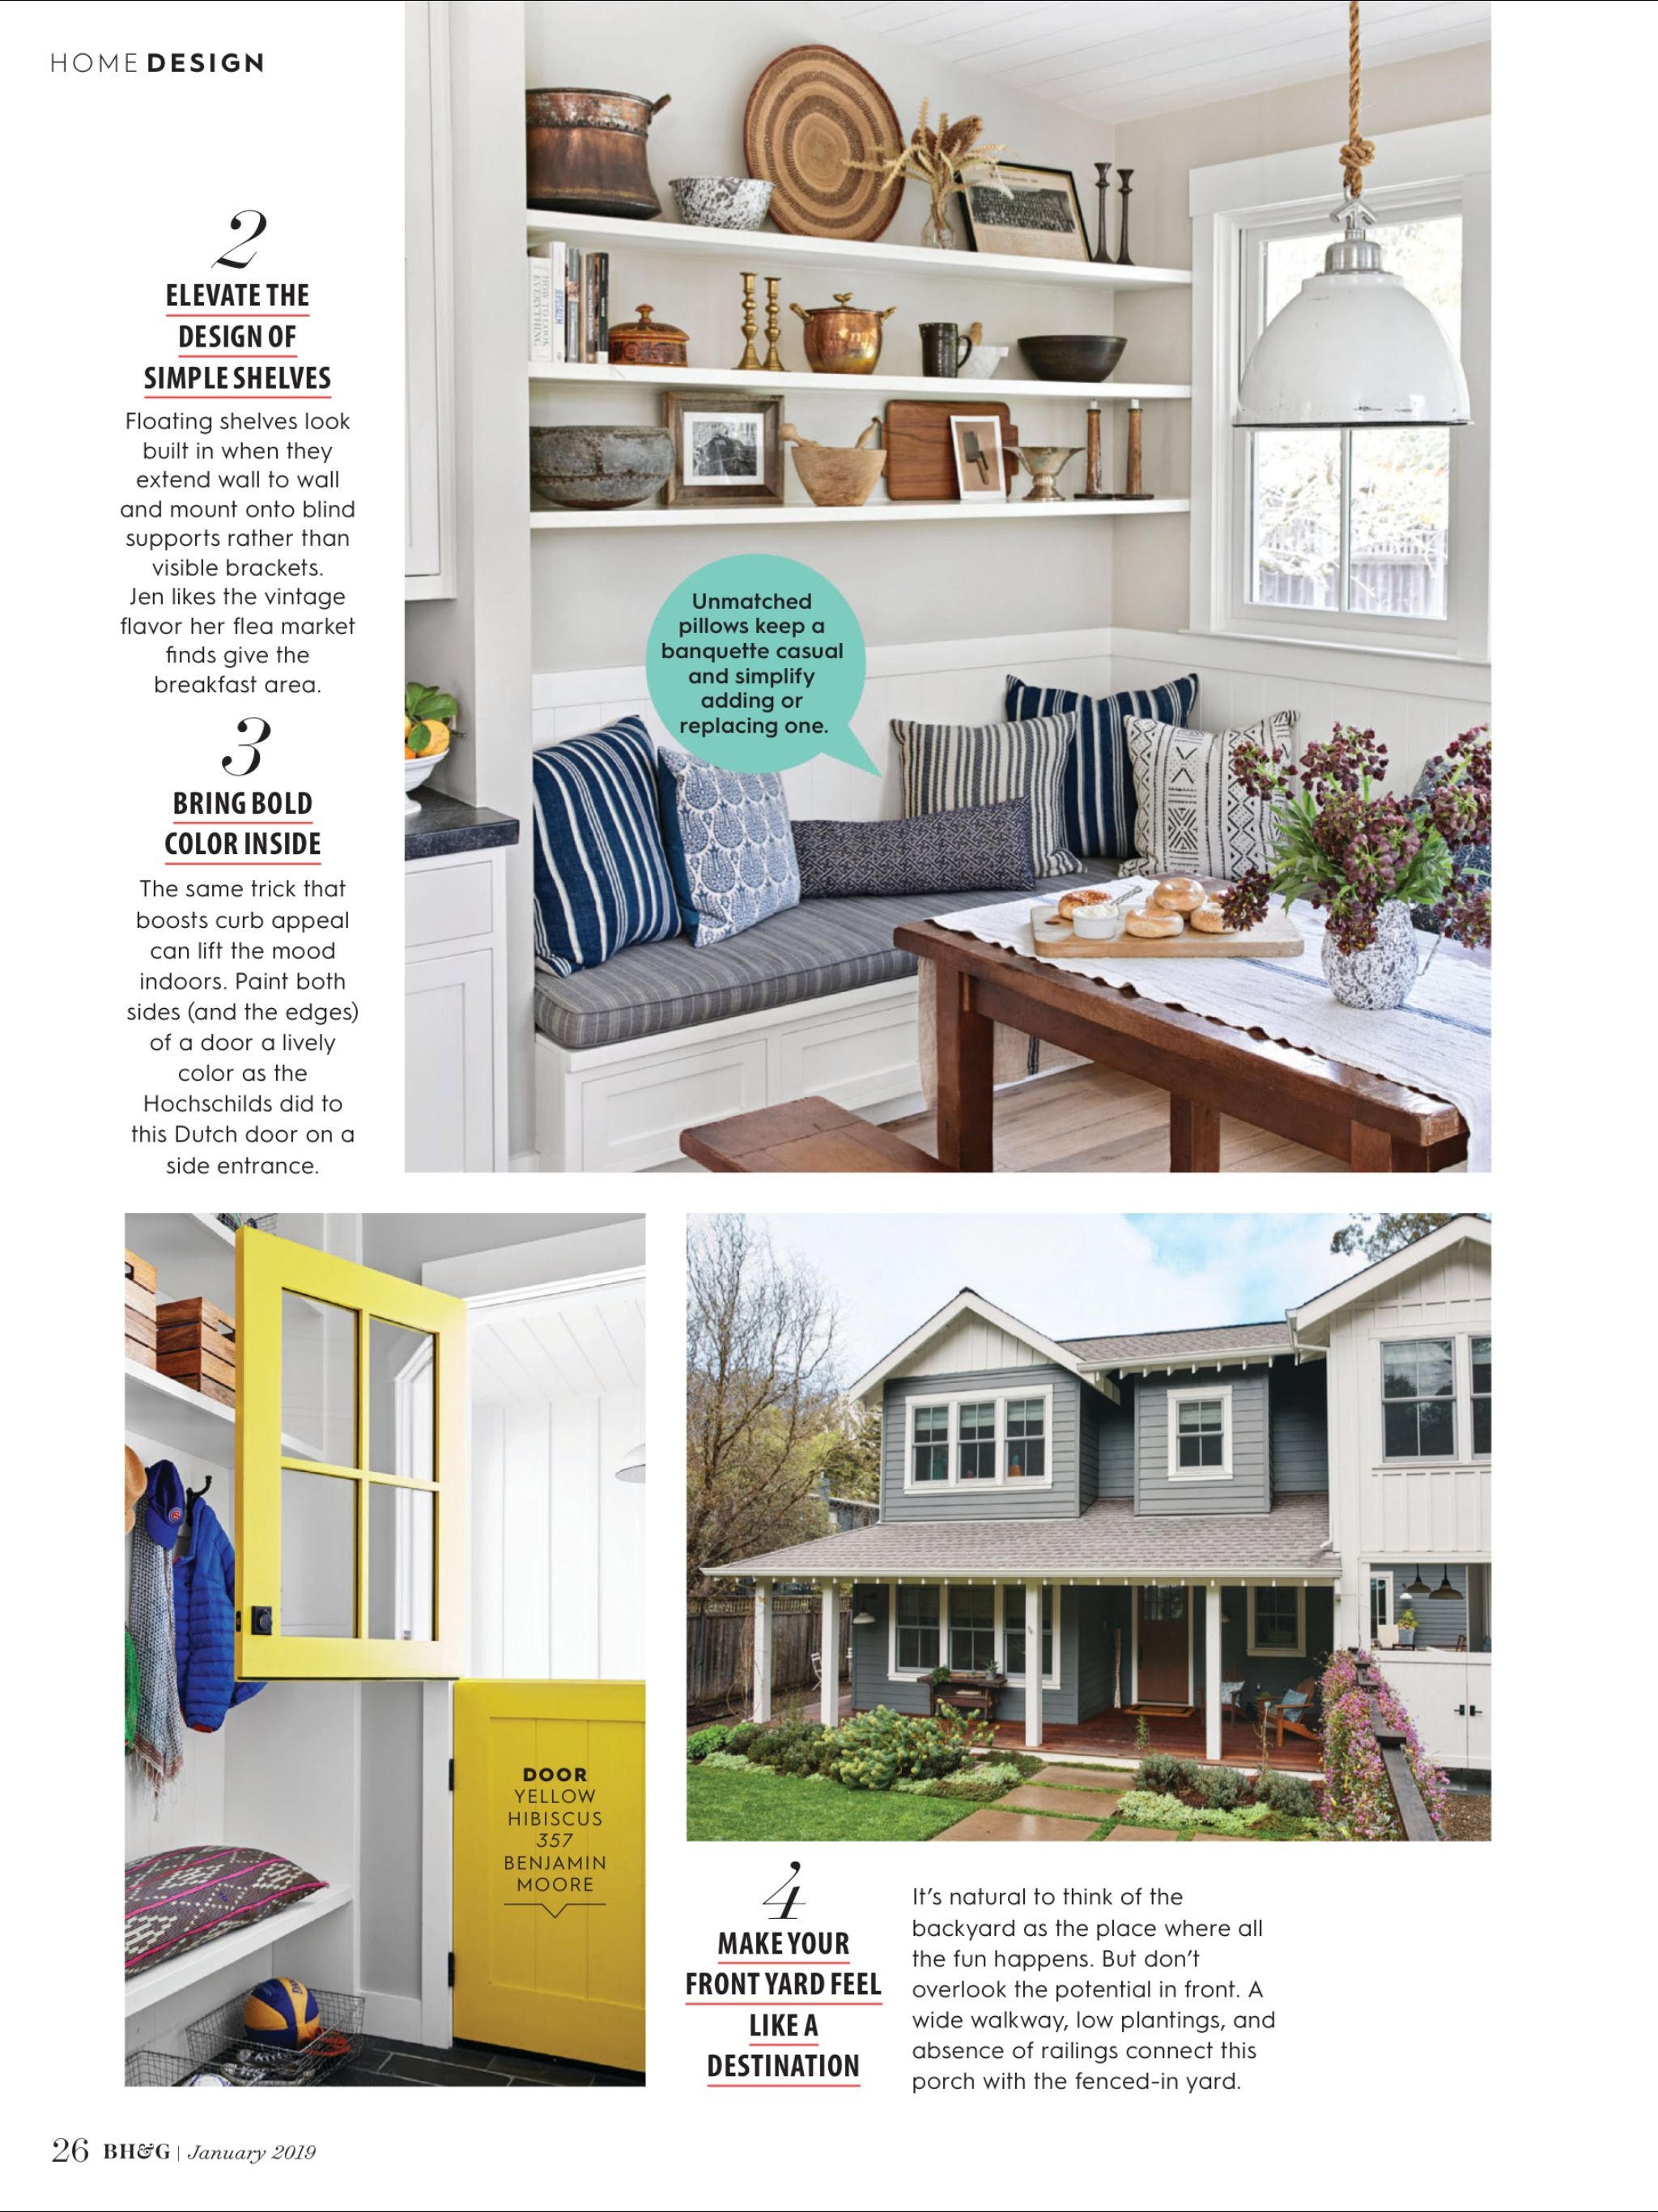 dfd75f7a5bb6bf476c0398b954d4b0ed - Better Homes And Gardens Special Interest Publications 2019